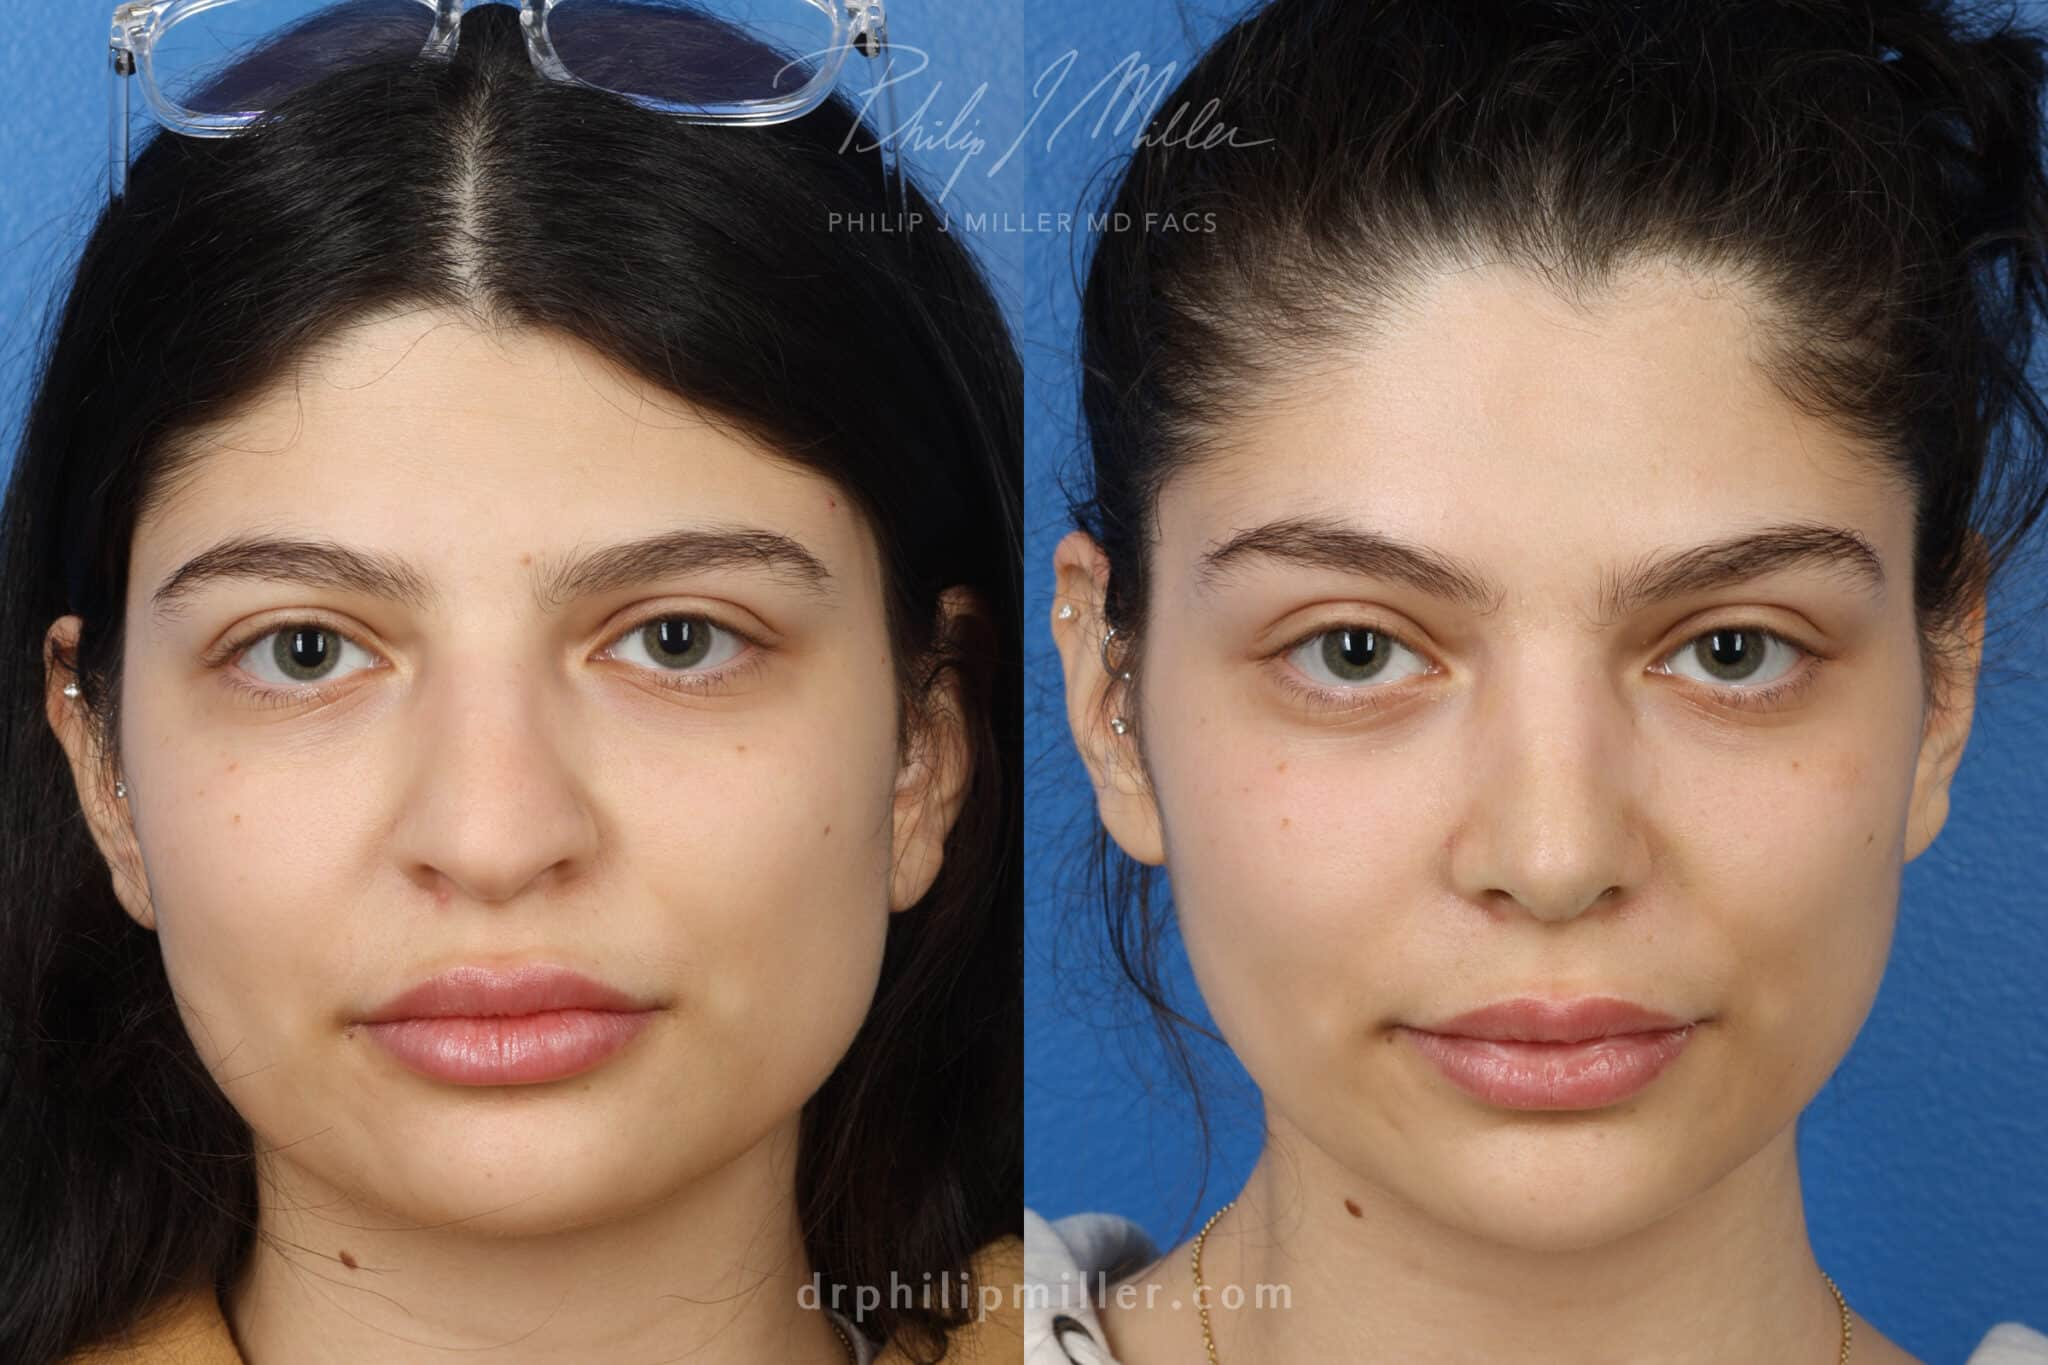 Rhinoplasty to enhance appearance of nose, one week post-op, by Dr. Miller